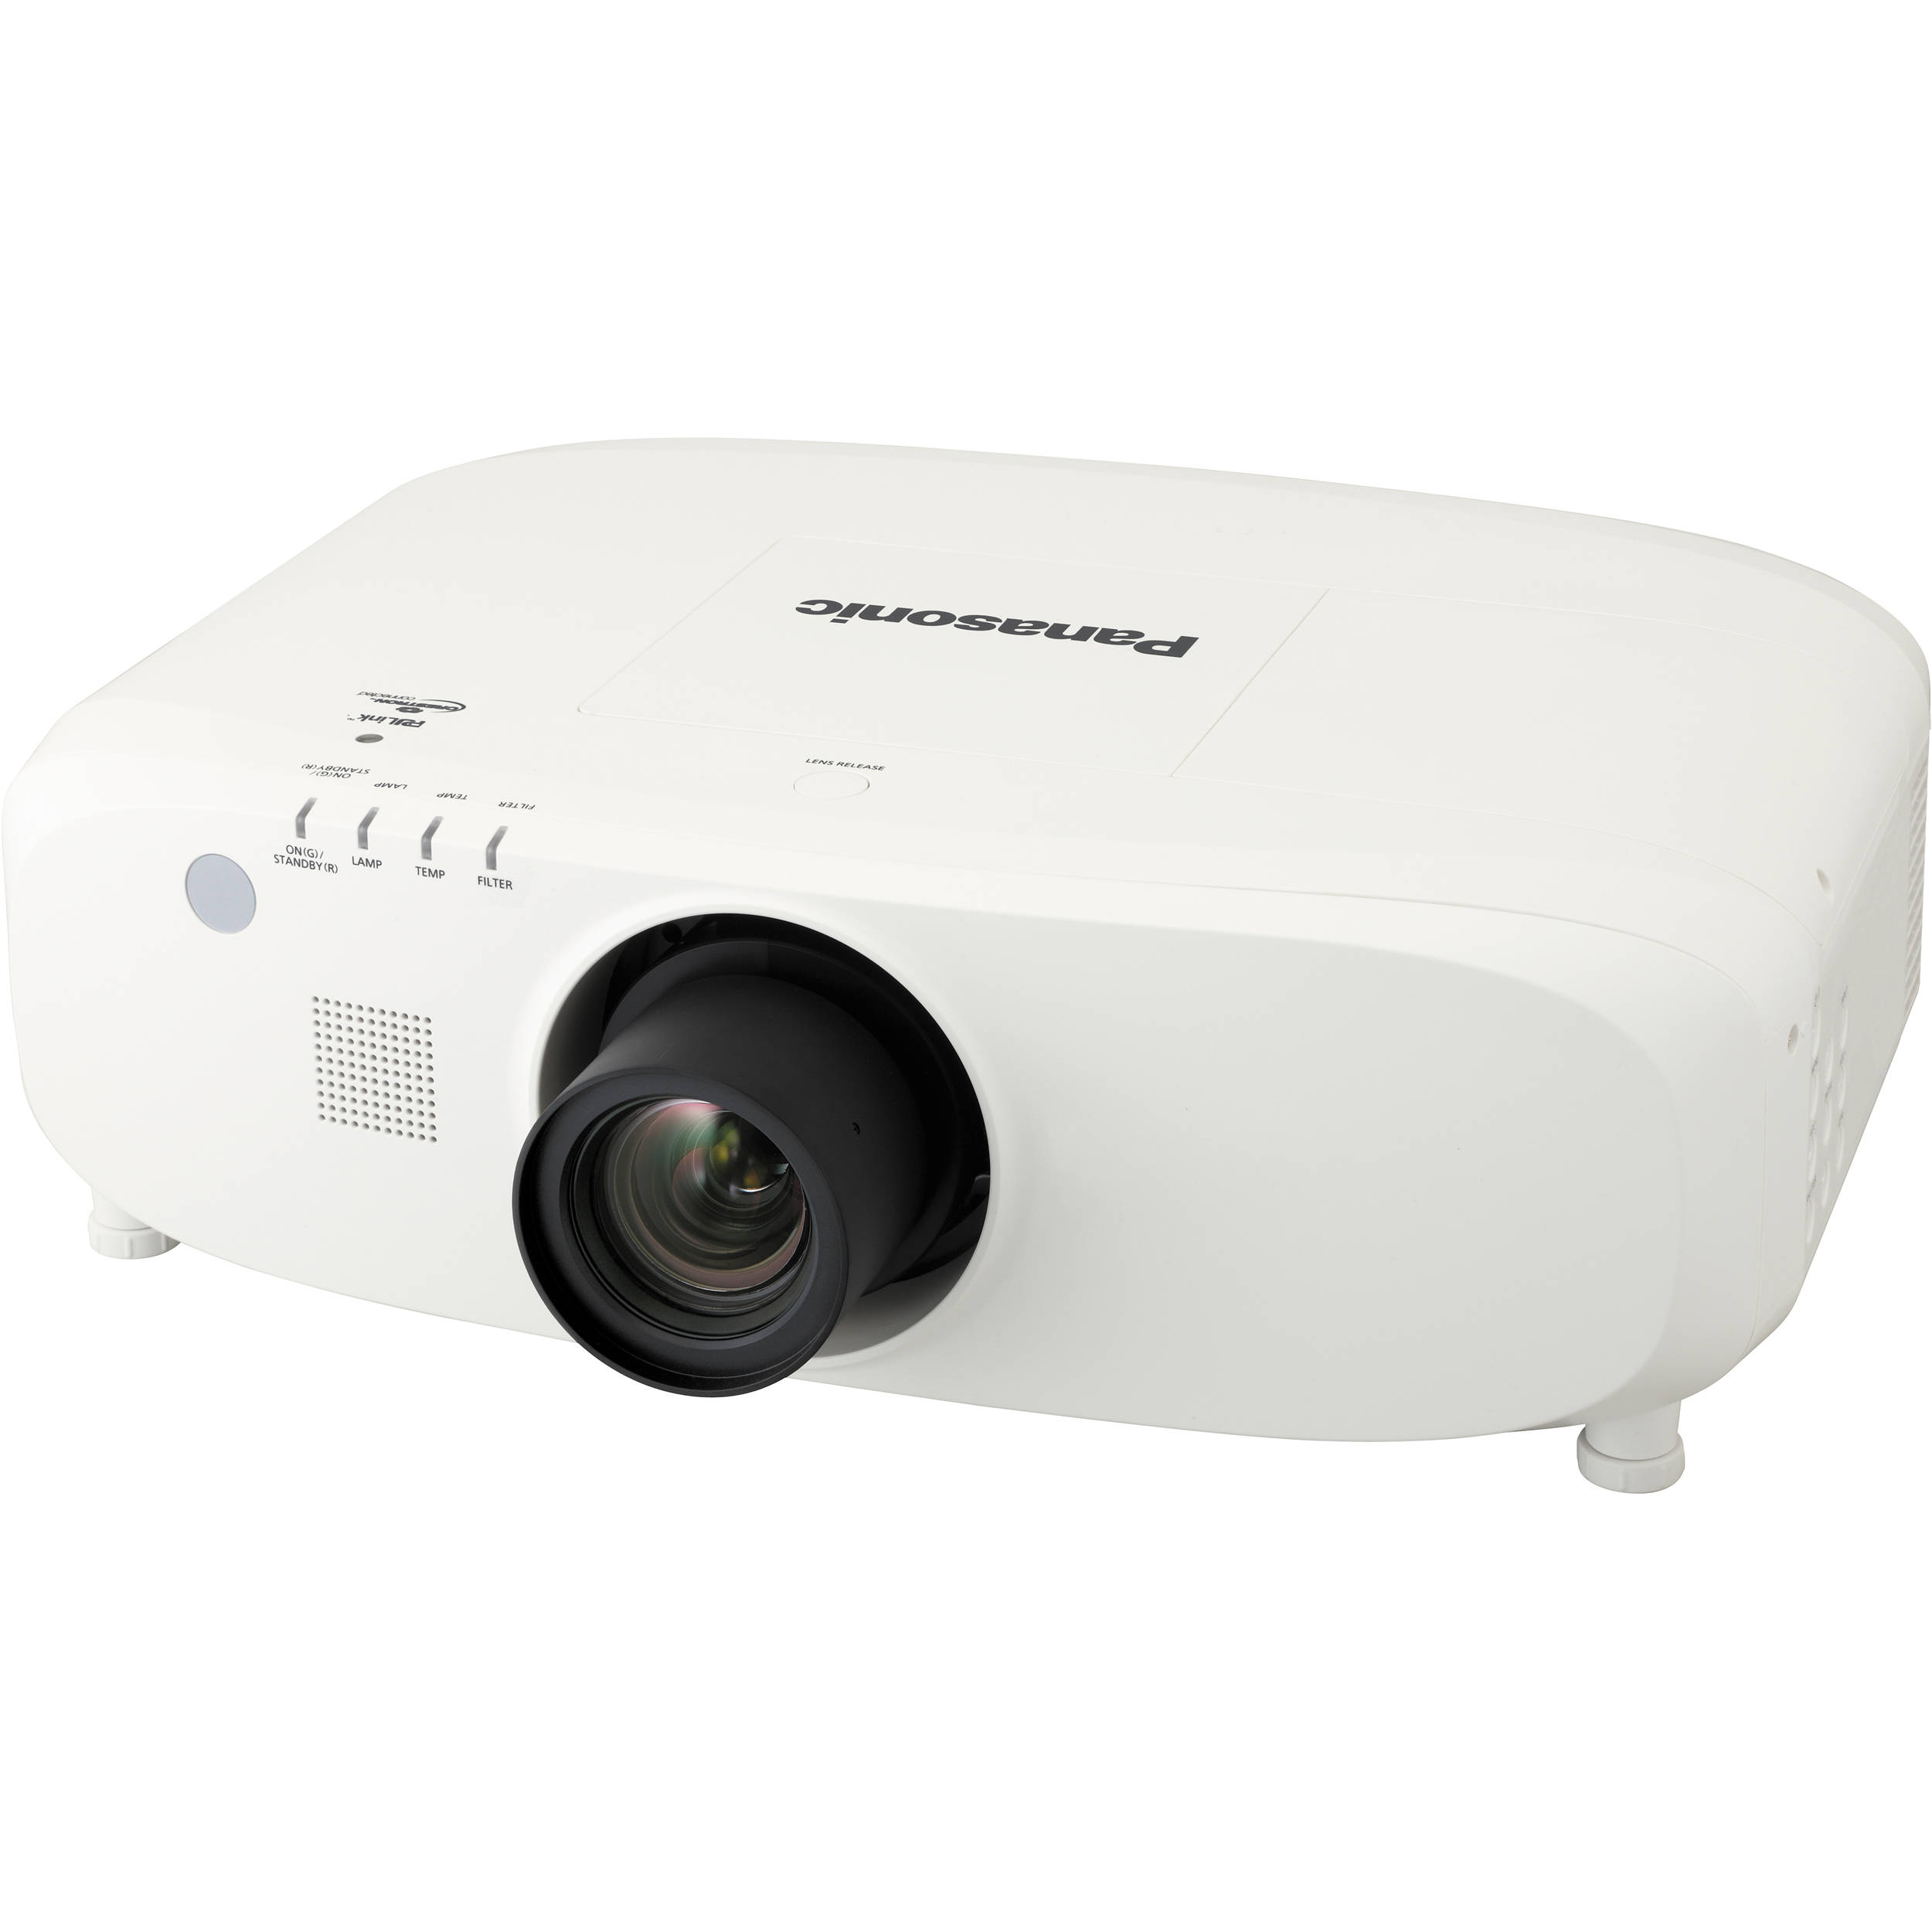 New 7500lum projectors